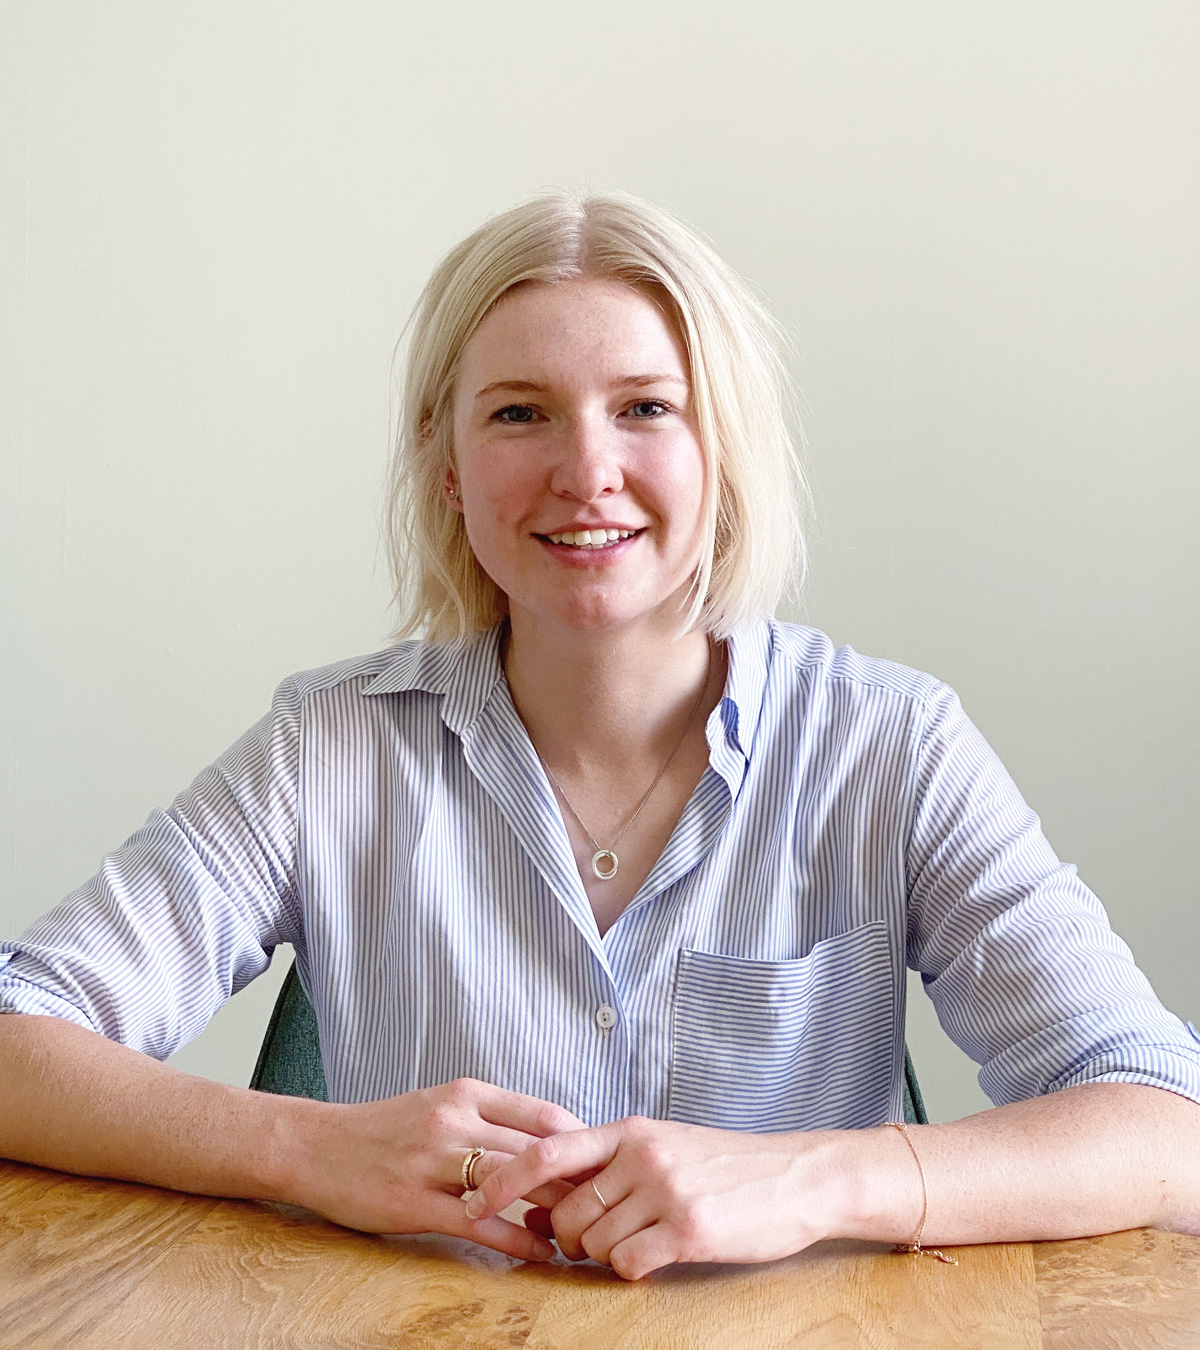 Hayley Ainsworth solicitor at Willans LLP